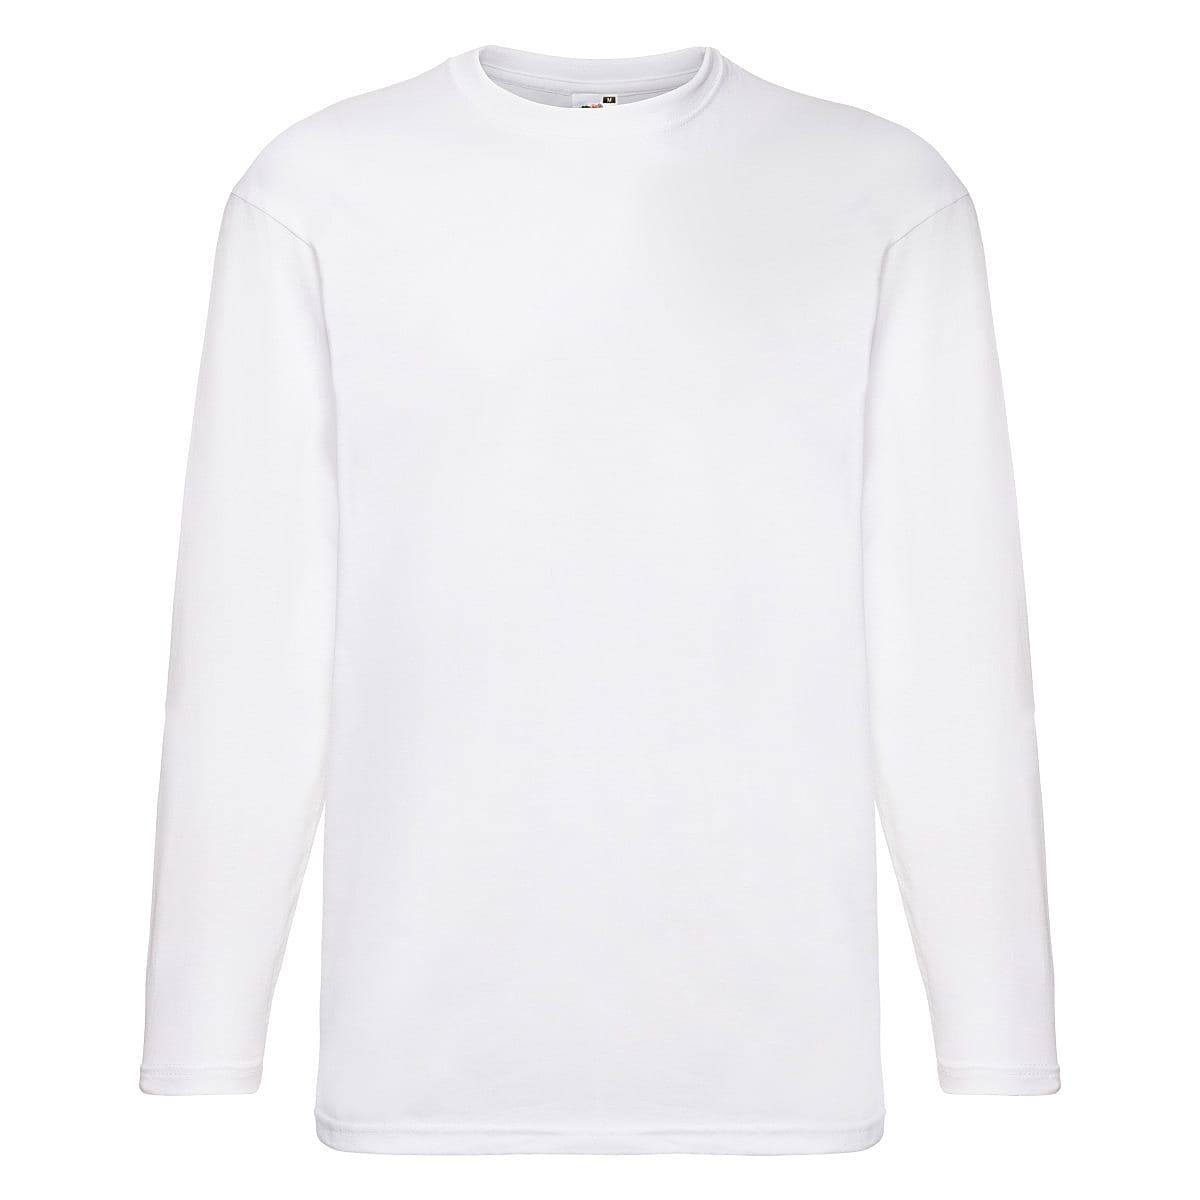 Fruit Of The Loom Valueweight Long-Sleeve T-Shirt in White (Product Code: 61038)